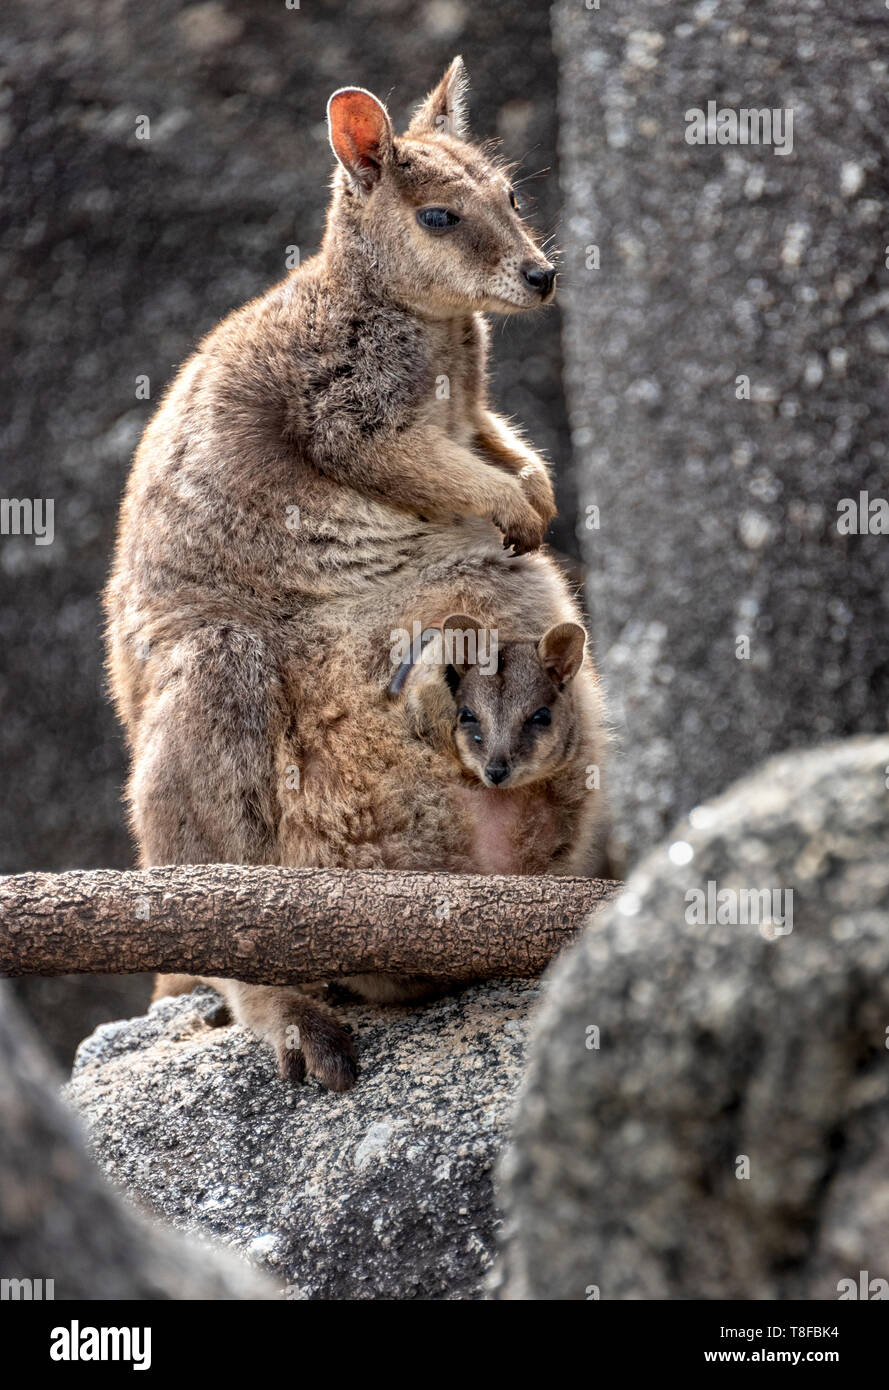 Rock wallaby with baby in pouch Stock Photo